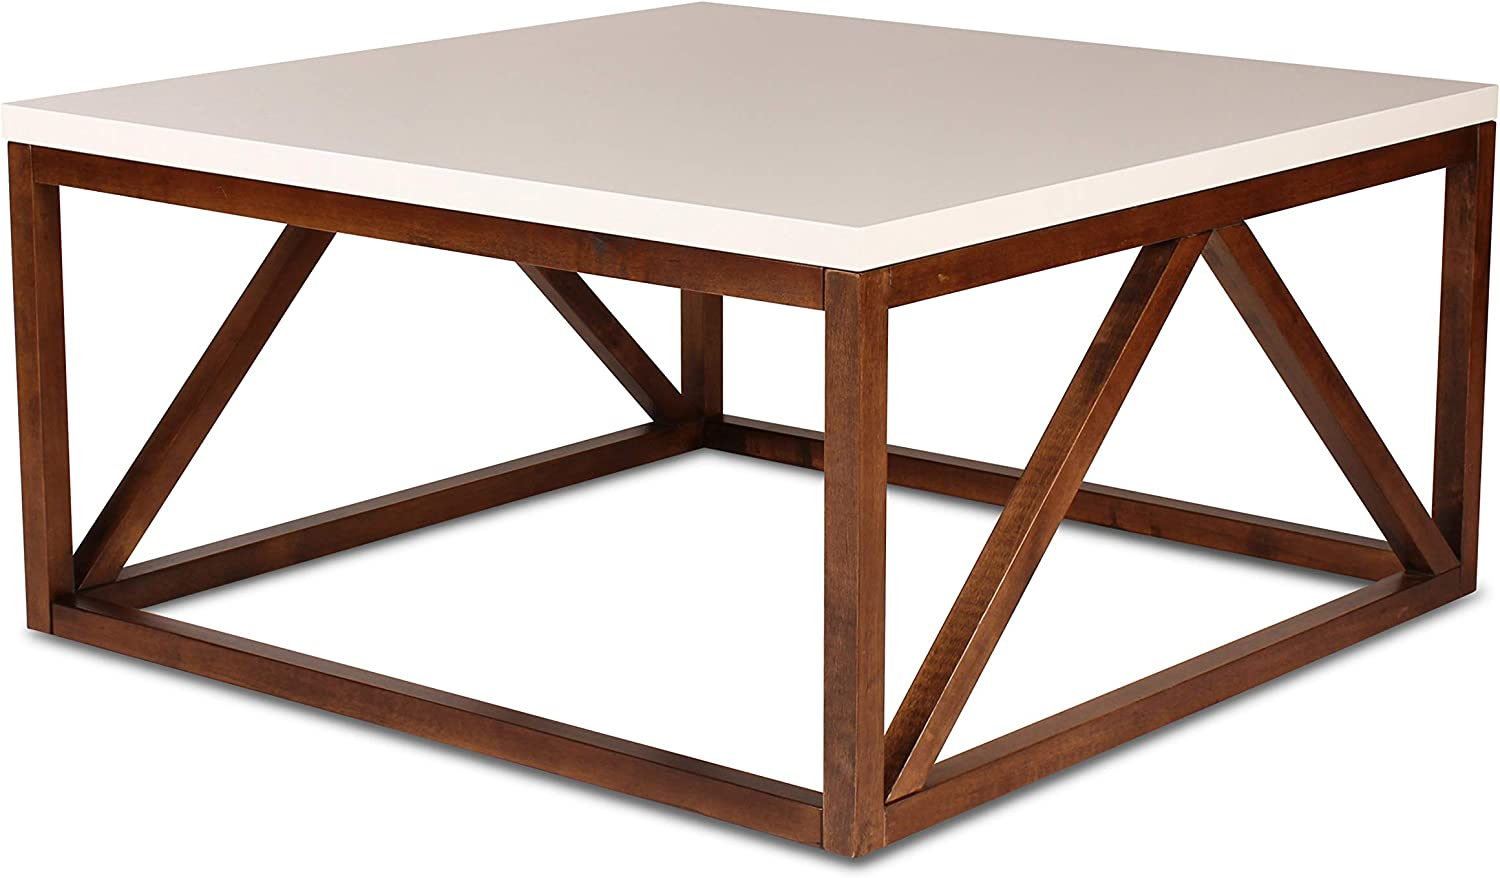 Amazon Com Kate And Laurel Kaya Two Toned Wood Square Coffee Table With White Top And Walnut Brown Base Furniture Decor